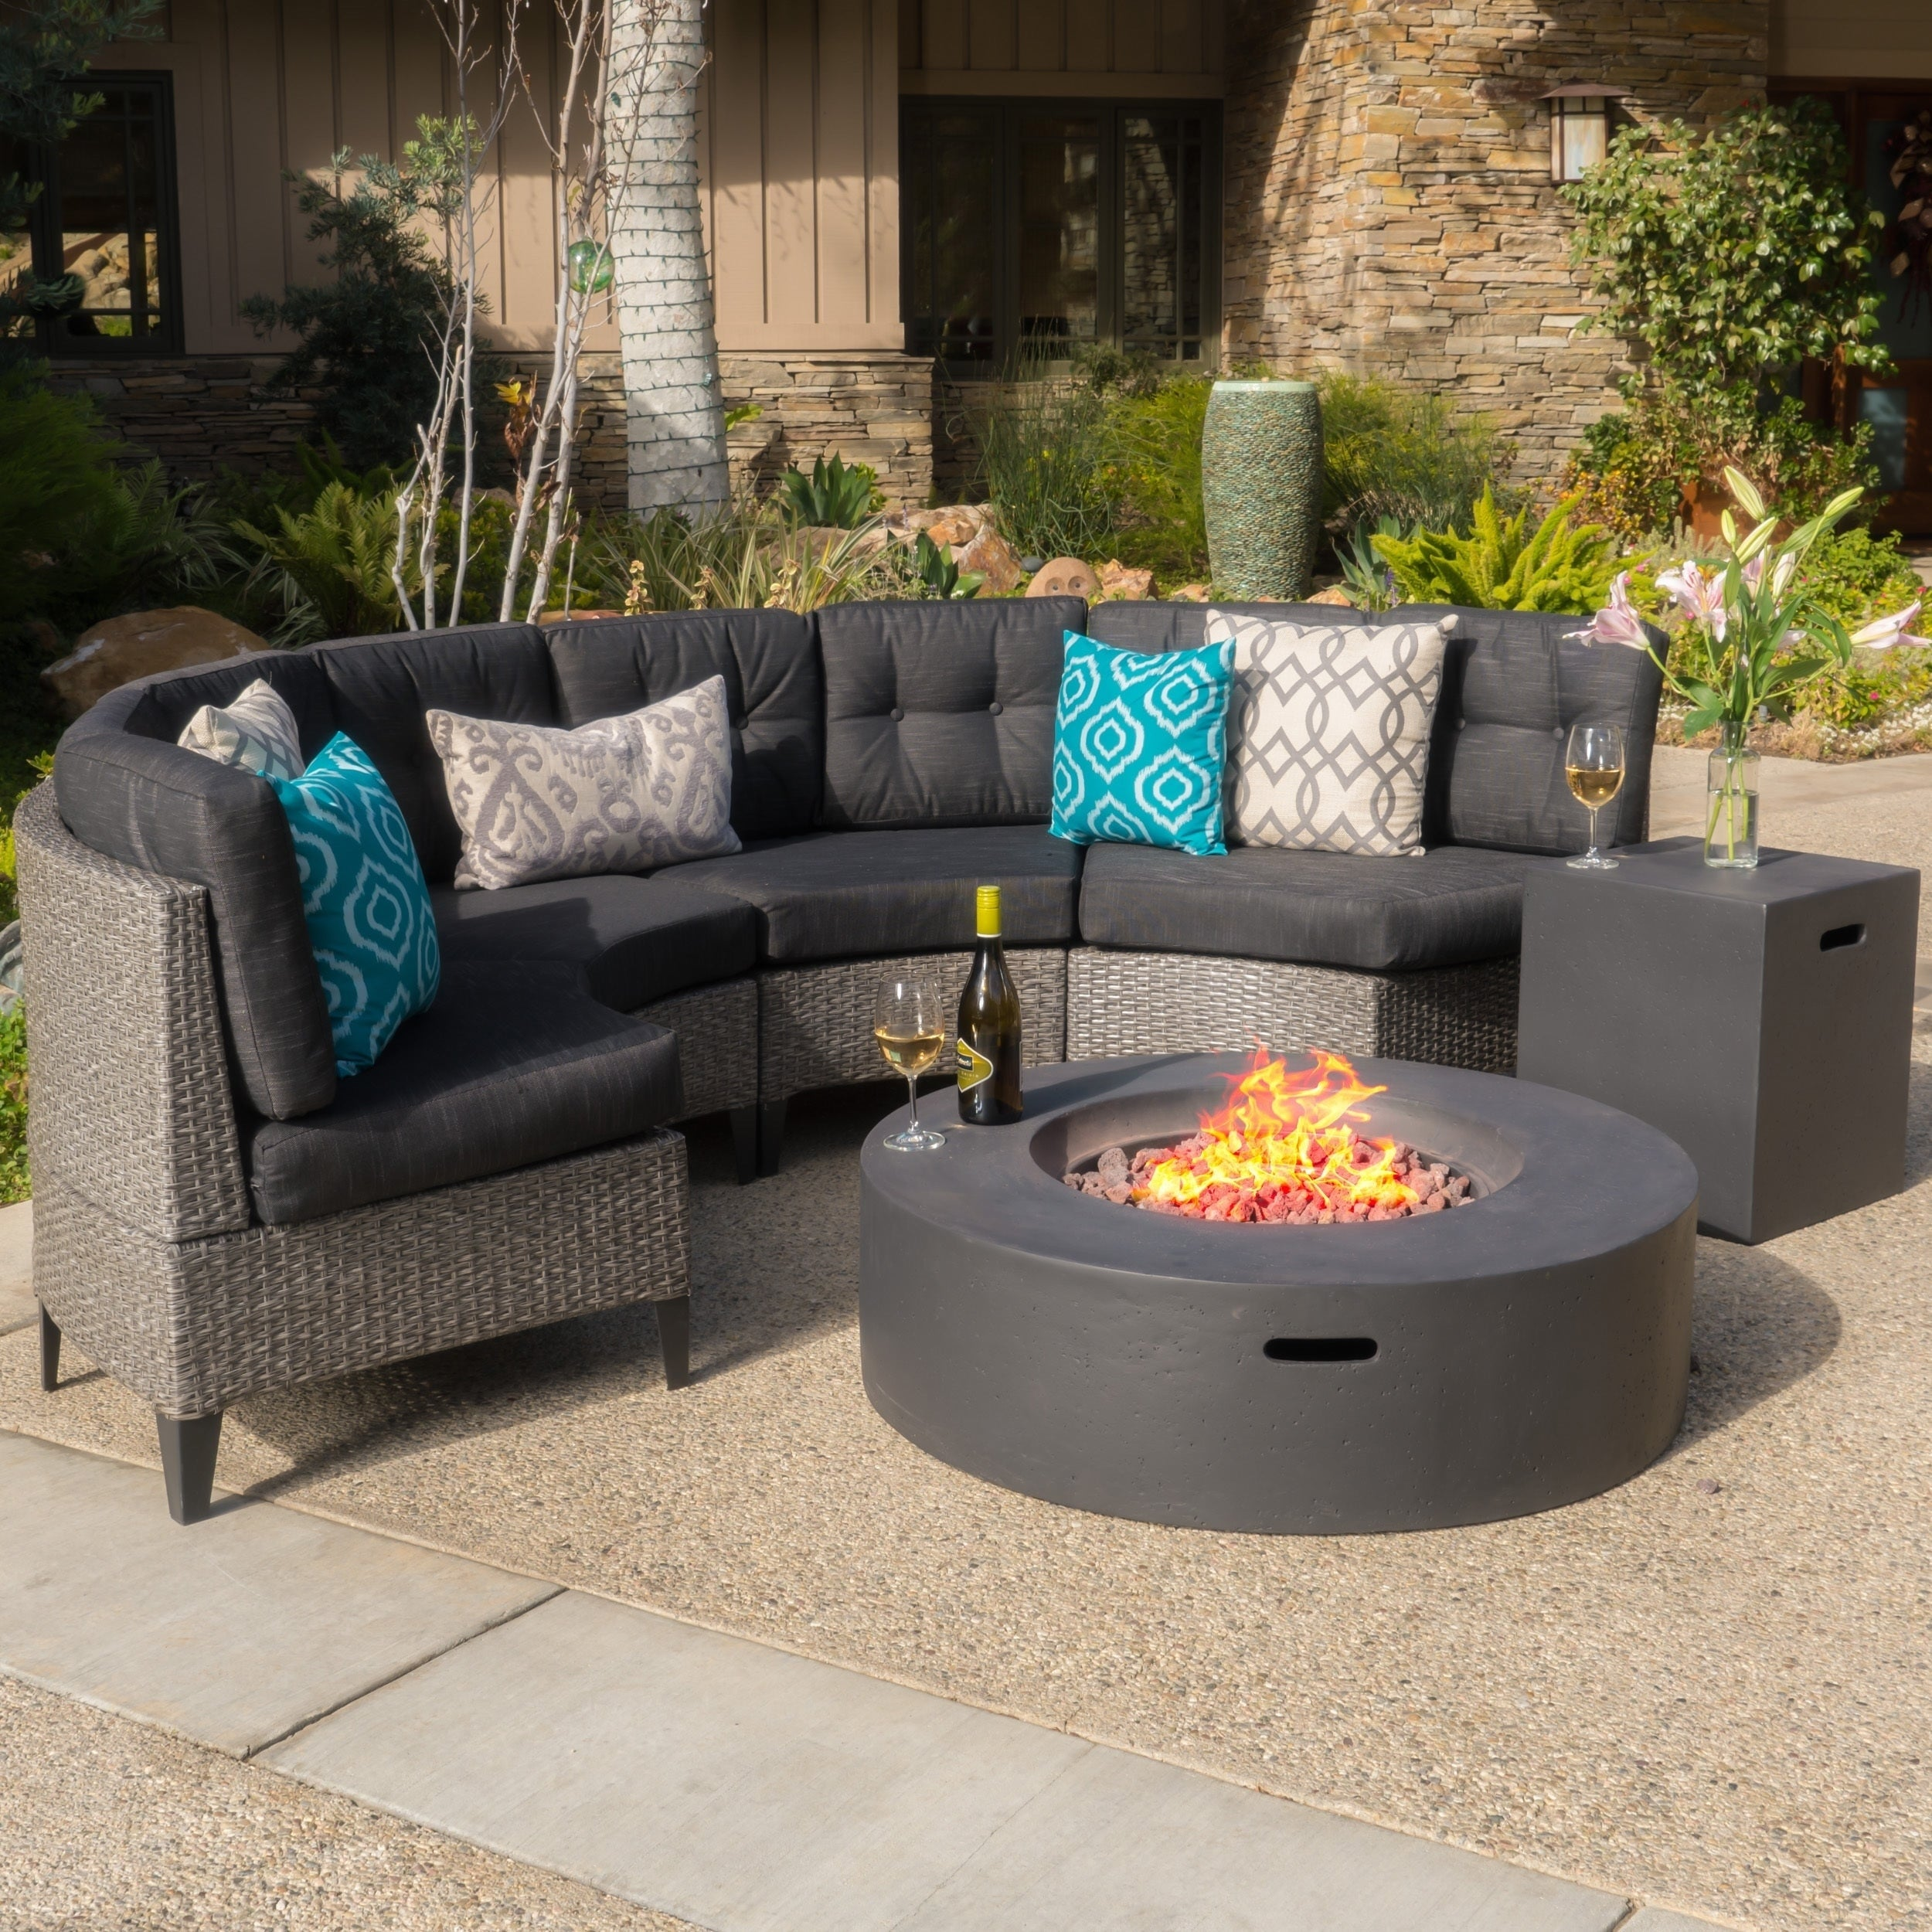 Wondrous Navagio Outdoor 6 Piece Wicker Half Round Sofa Set With Fire Table By Christopher Knight Home Machost Co Dining Chair Design Ideas Machostcouk